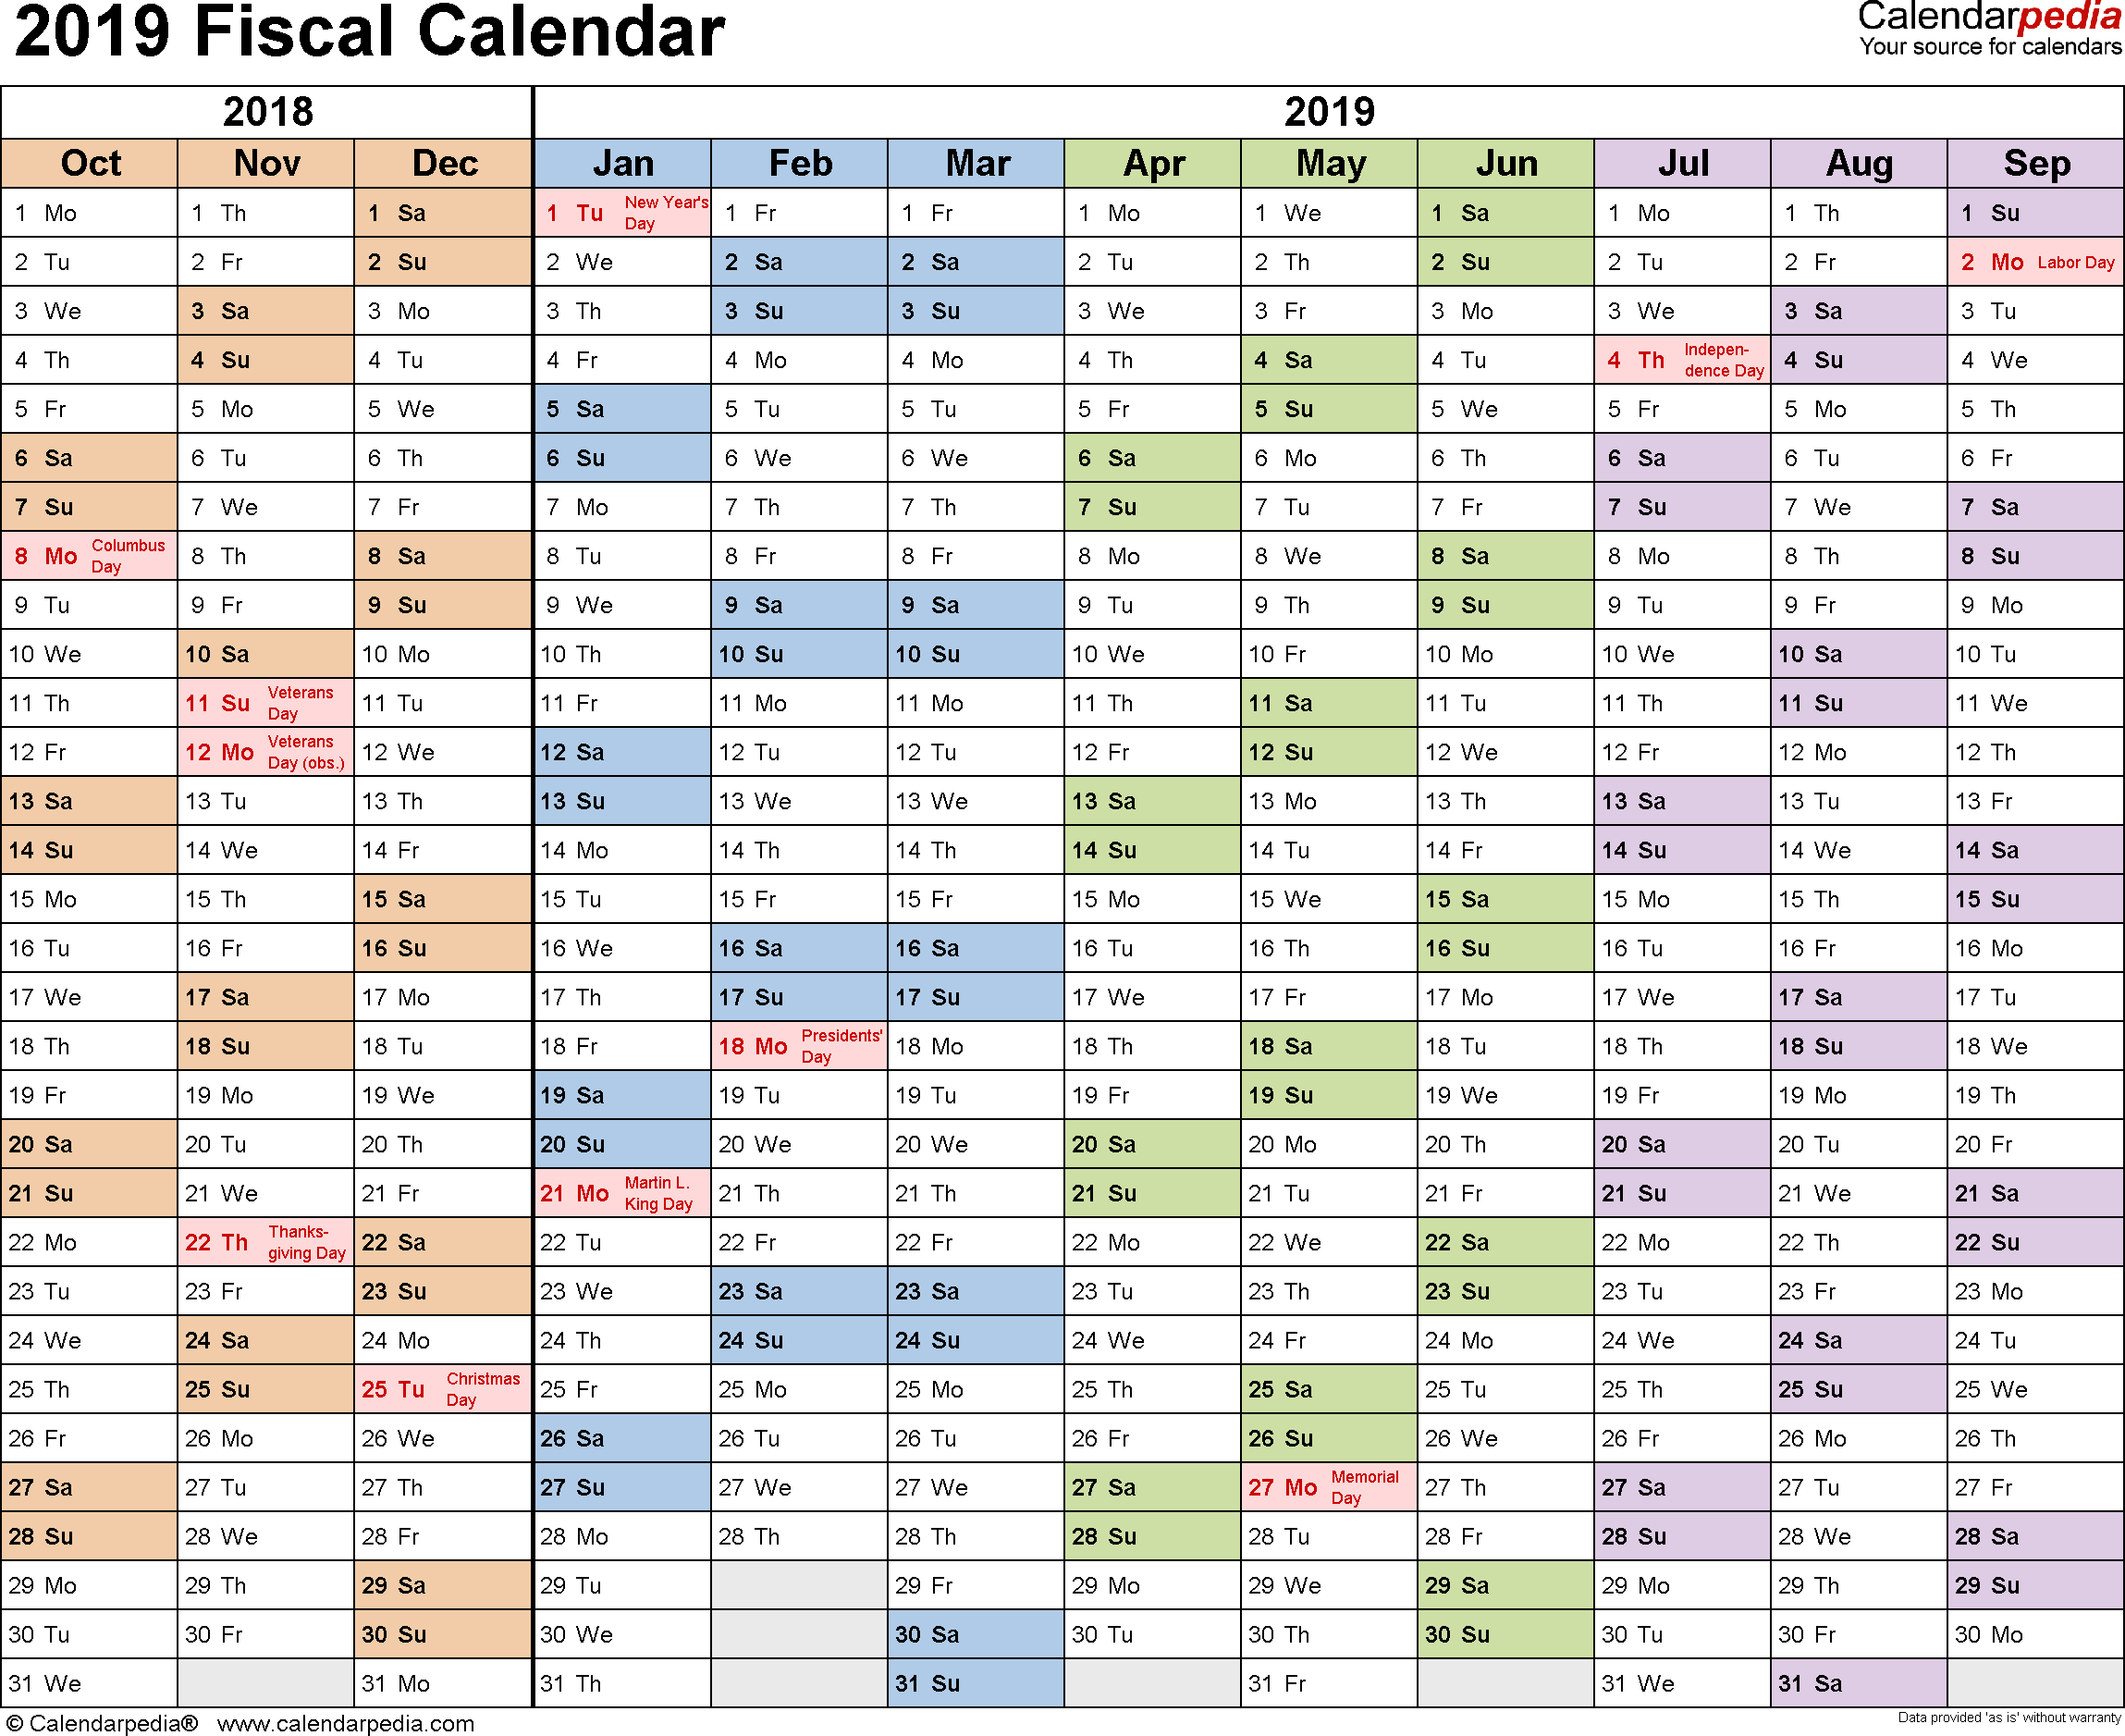 2019 Leave Year Calendar With Fiscal Calendars As Free Printable Excel Templates